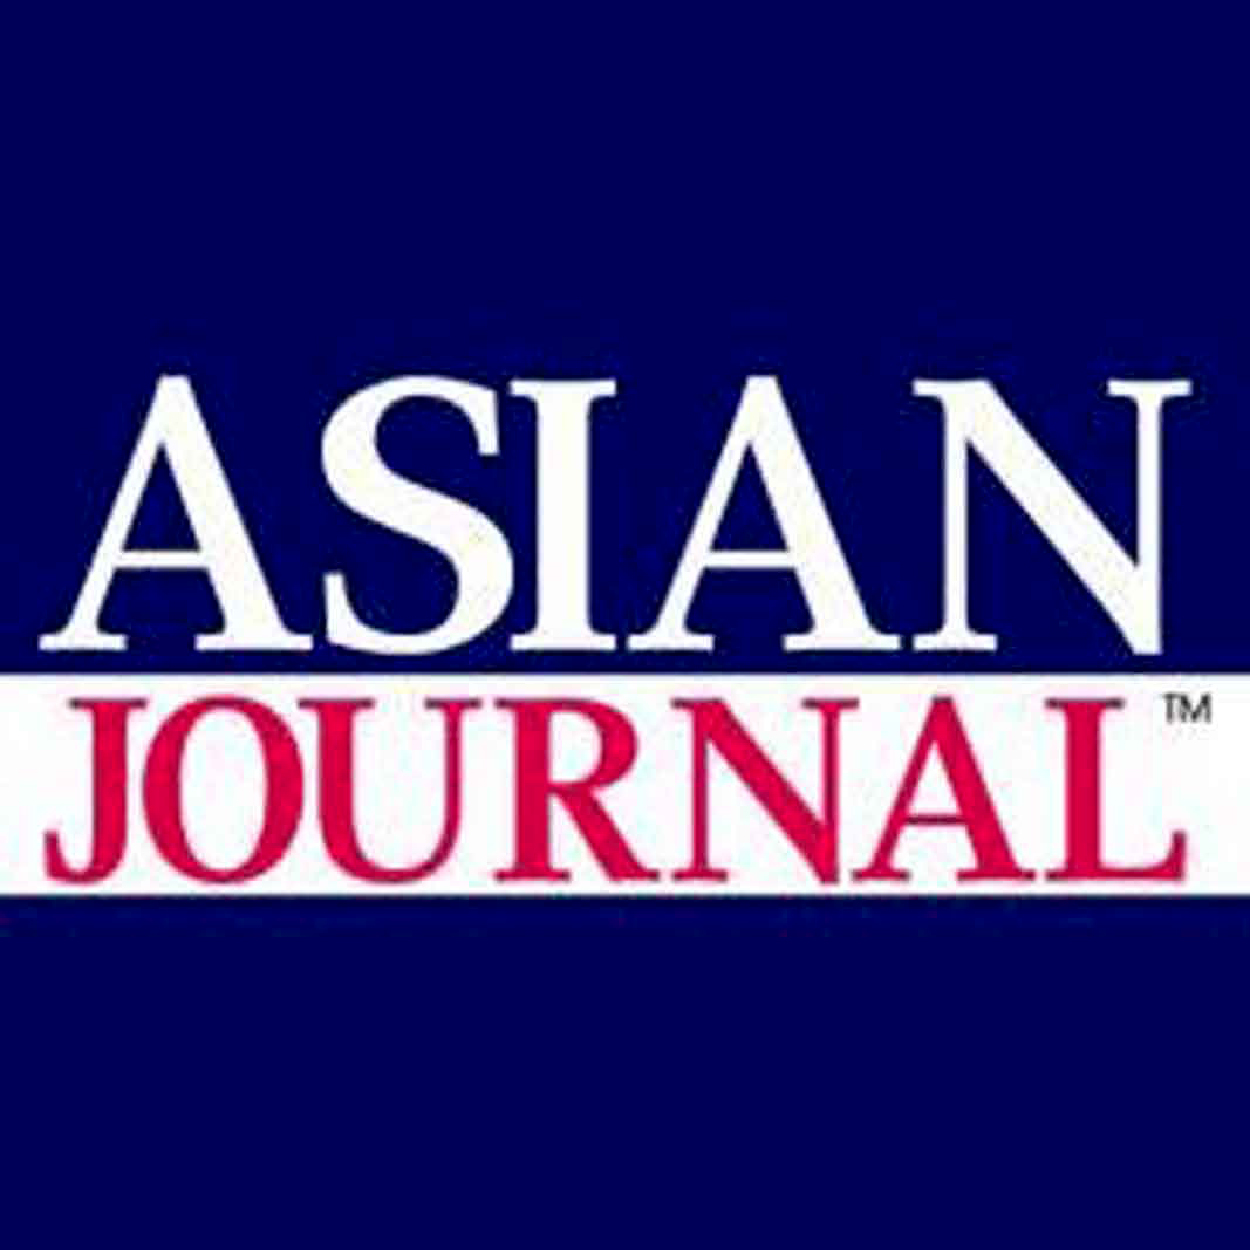 Asian Journal